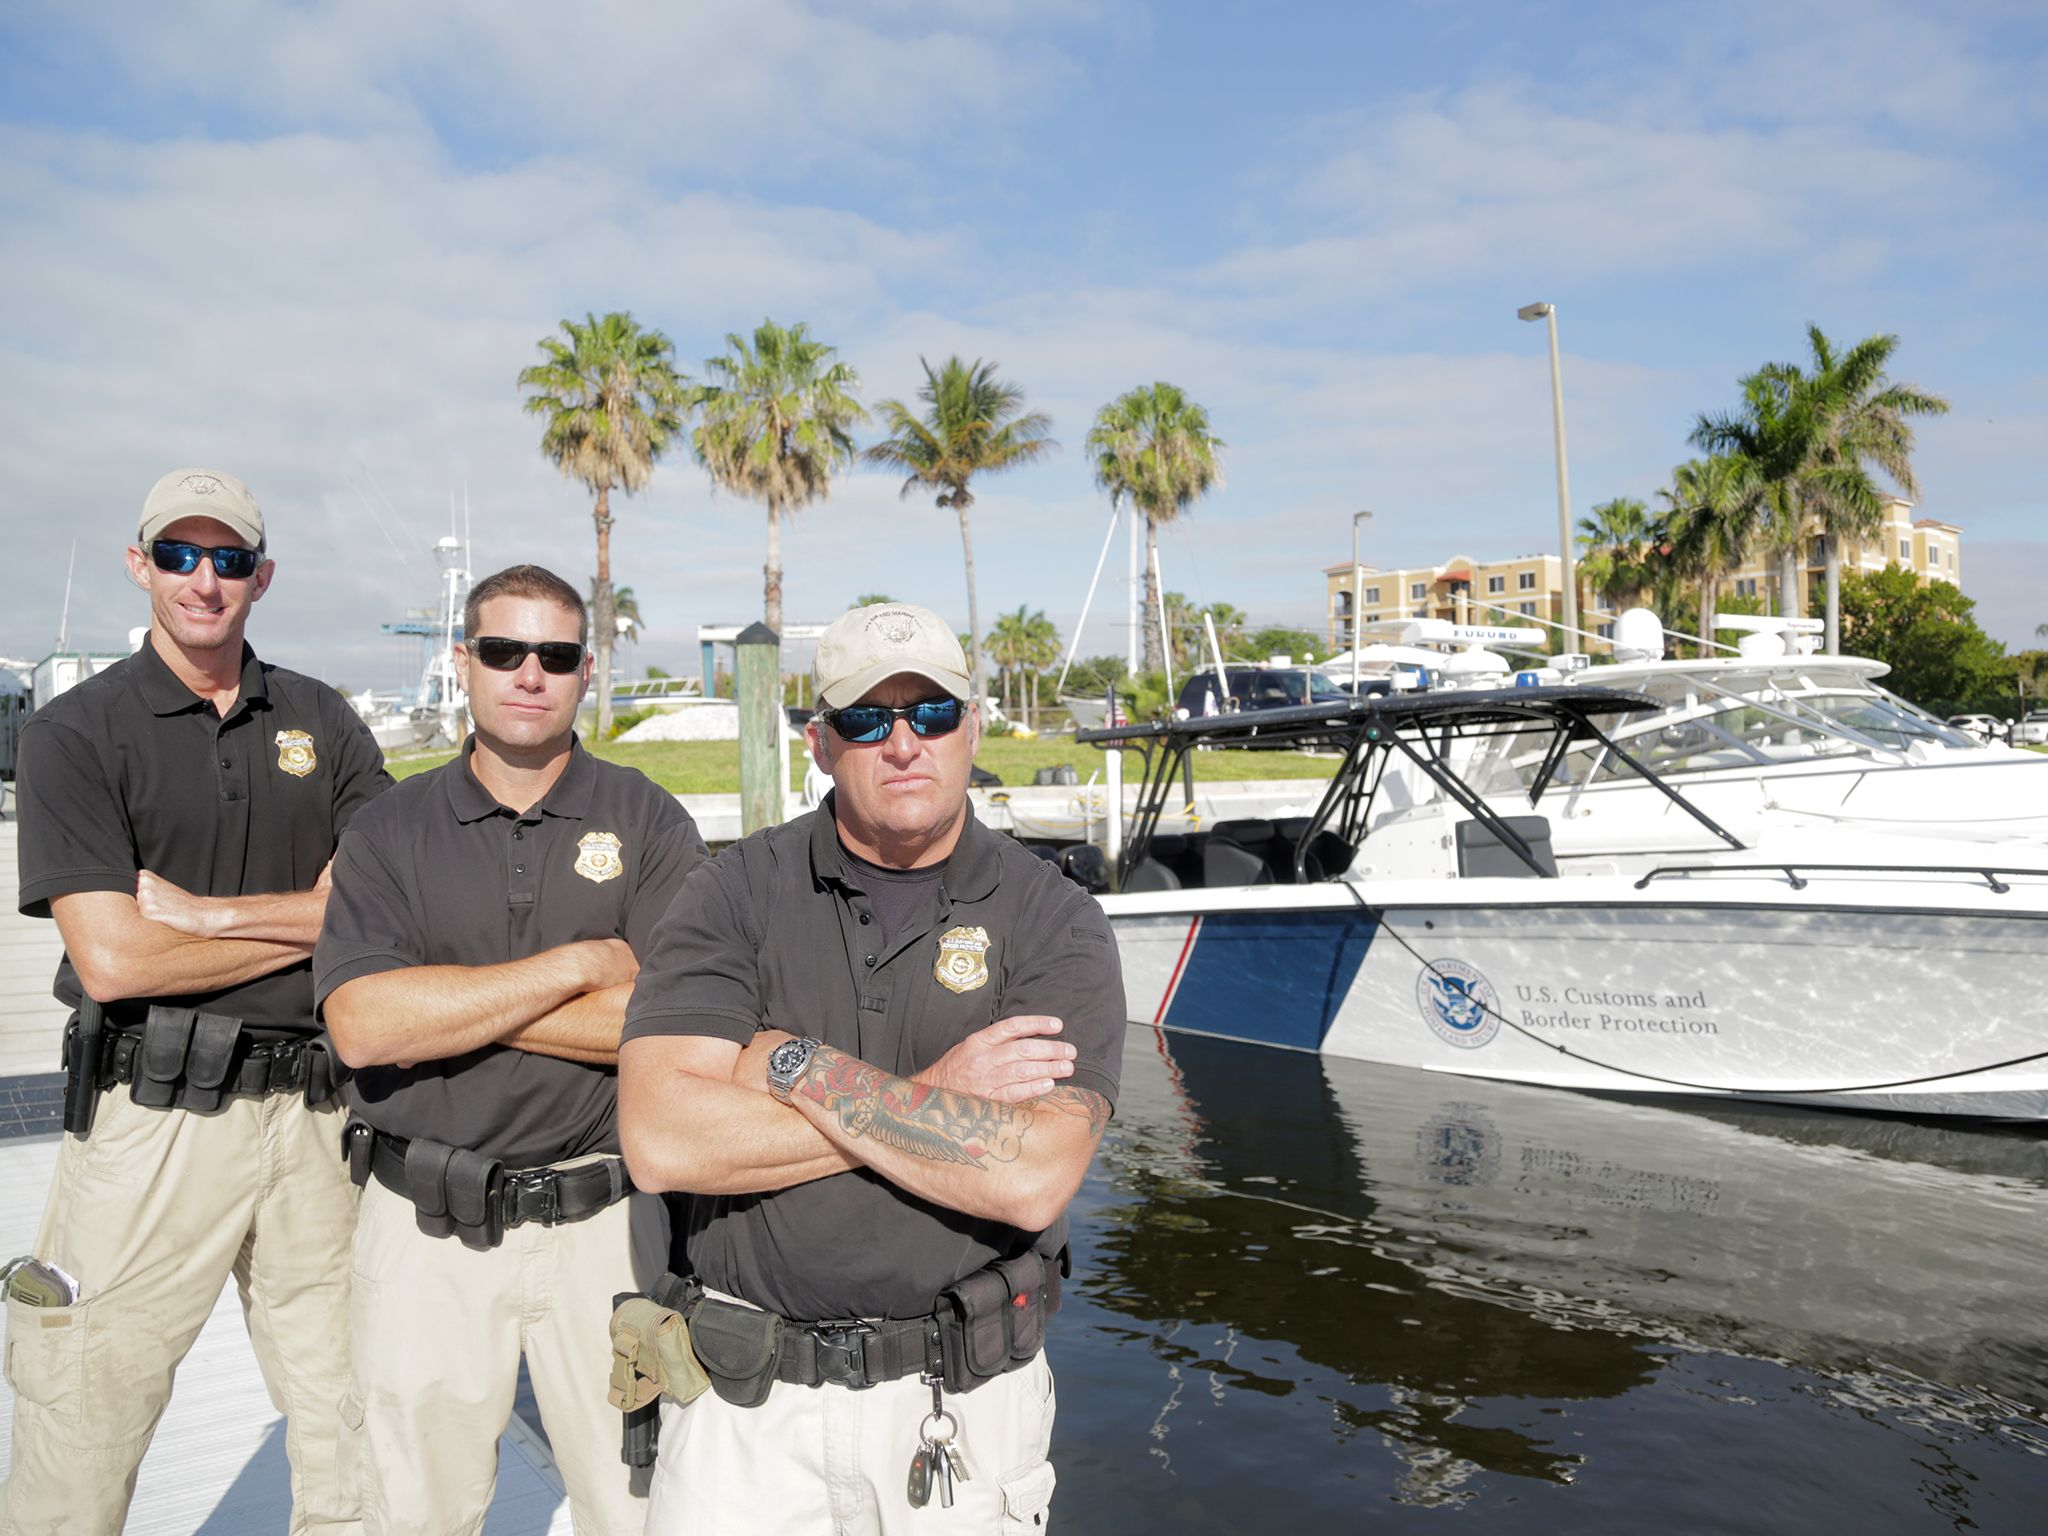 West Palm Beach, Fla.: Jack Creaig Custom Border Protection Commander and crew by their boat in... [Photo of the day - 一月 2015]